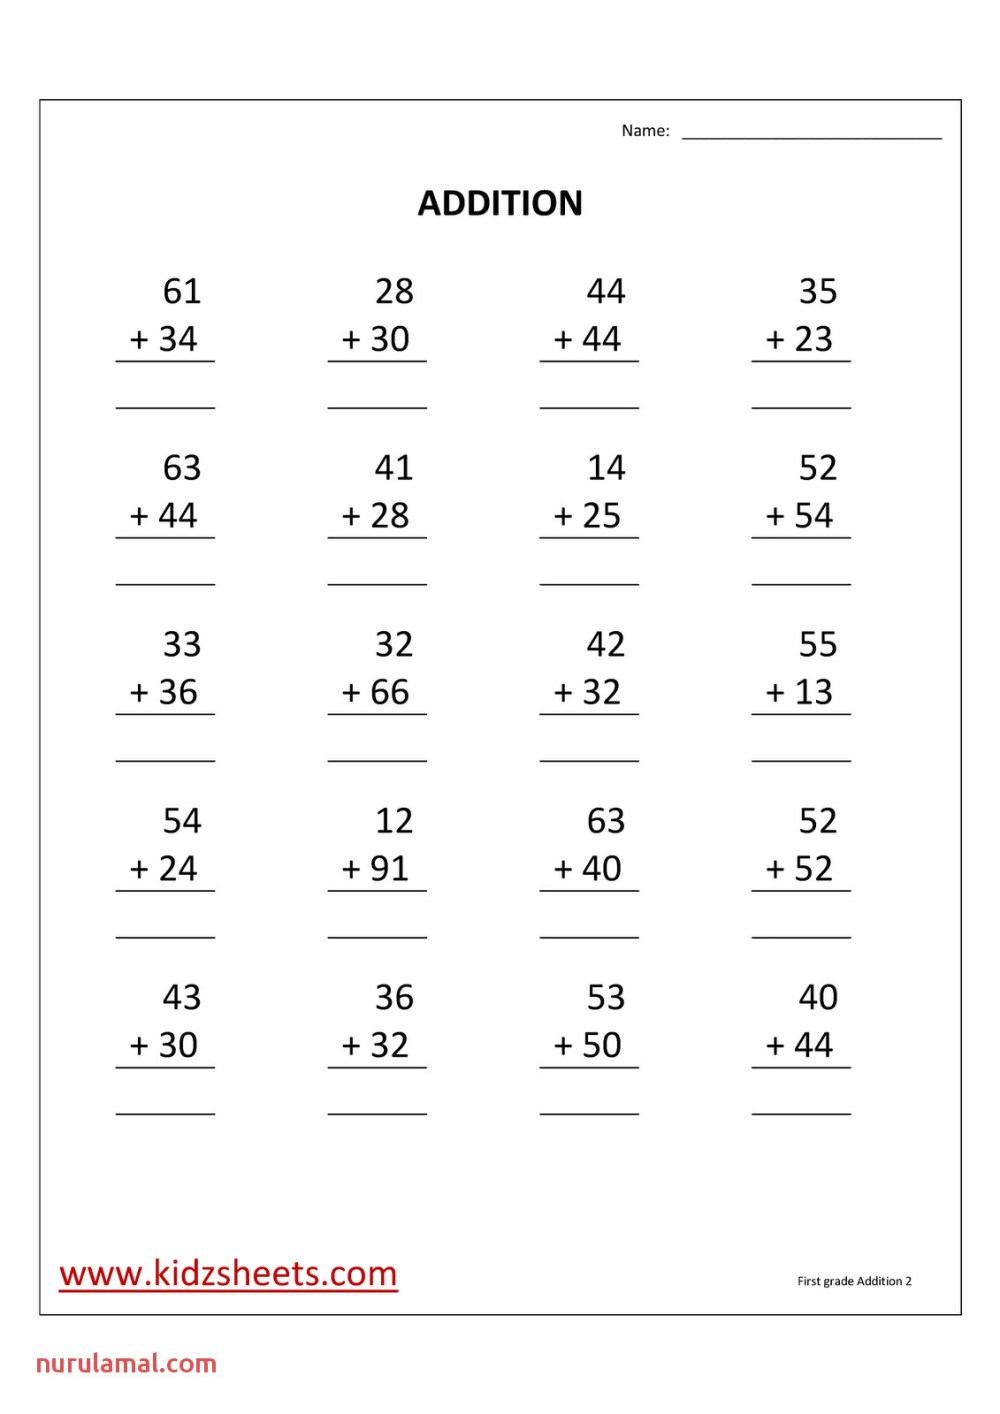 medium resolution of Addition Regrouping Riddle Worksheet   Printable Worksheets and Activities  for Teachers